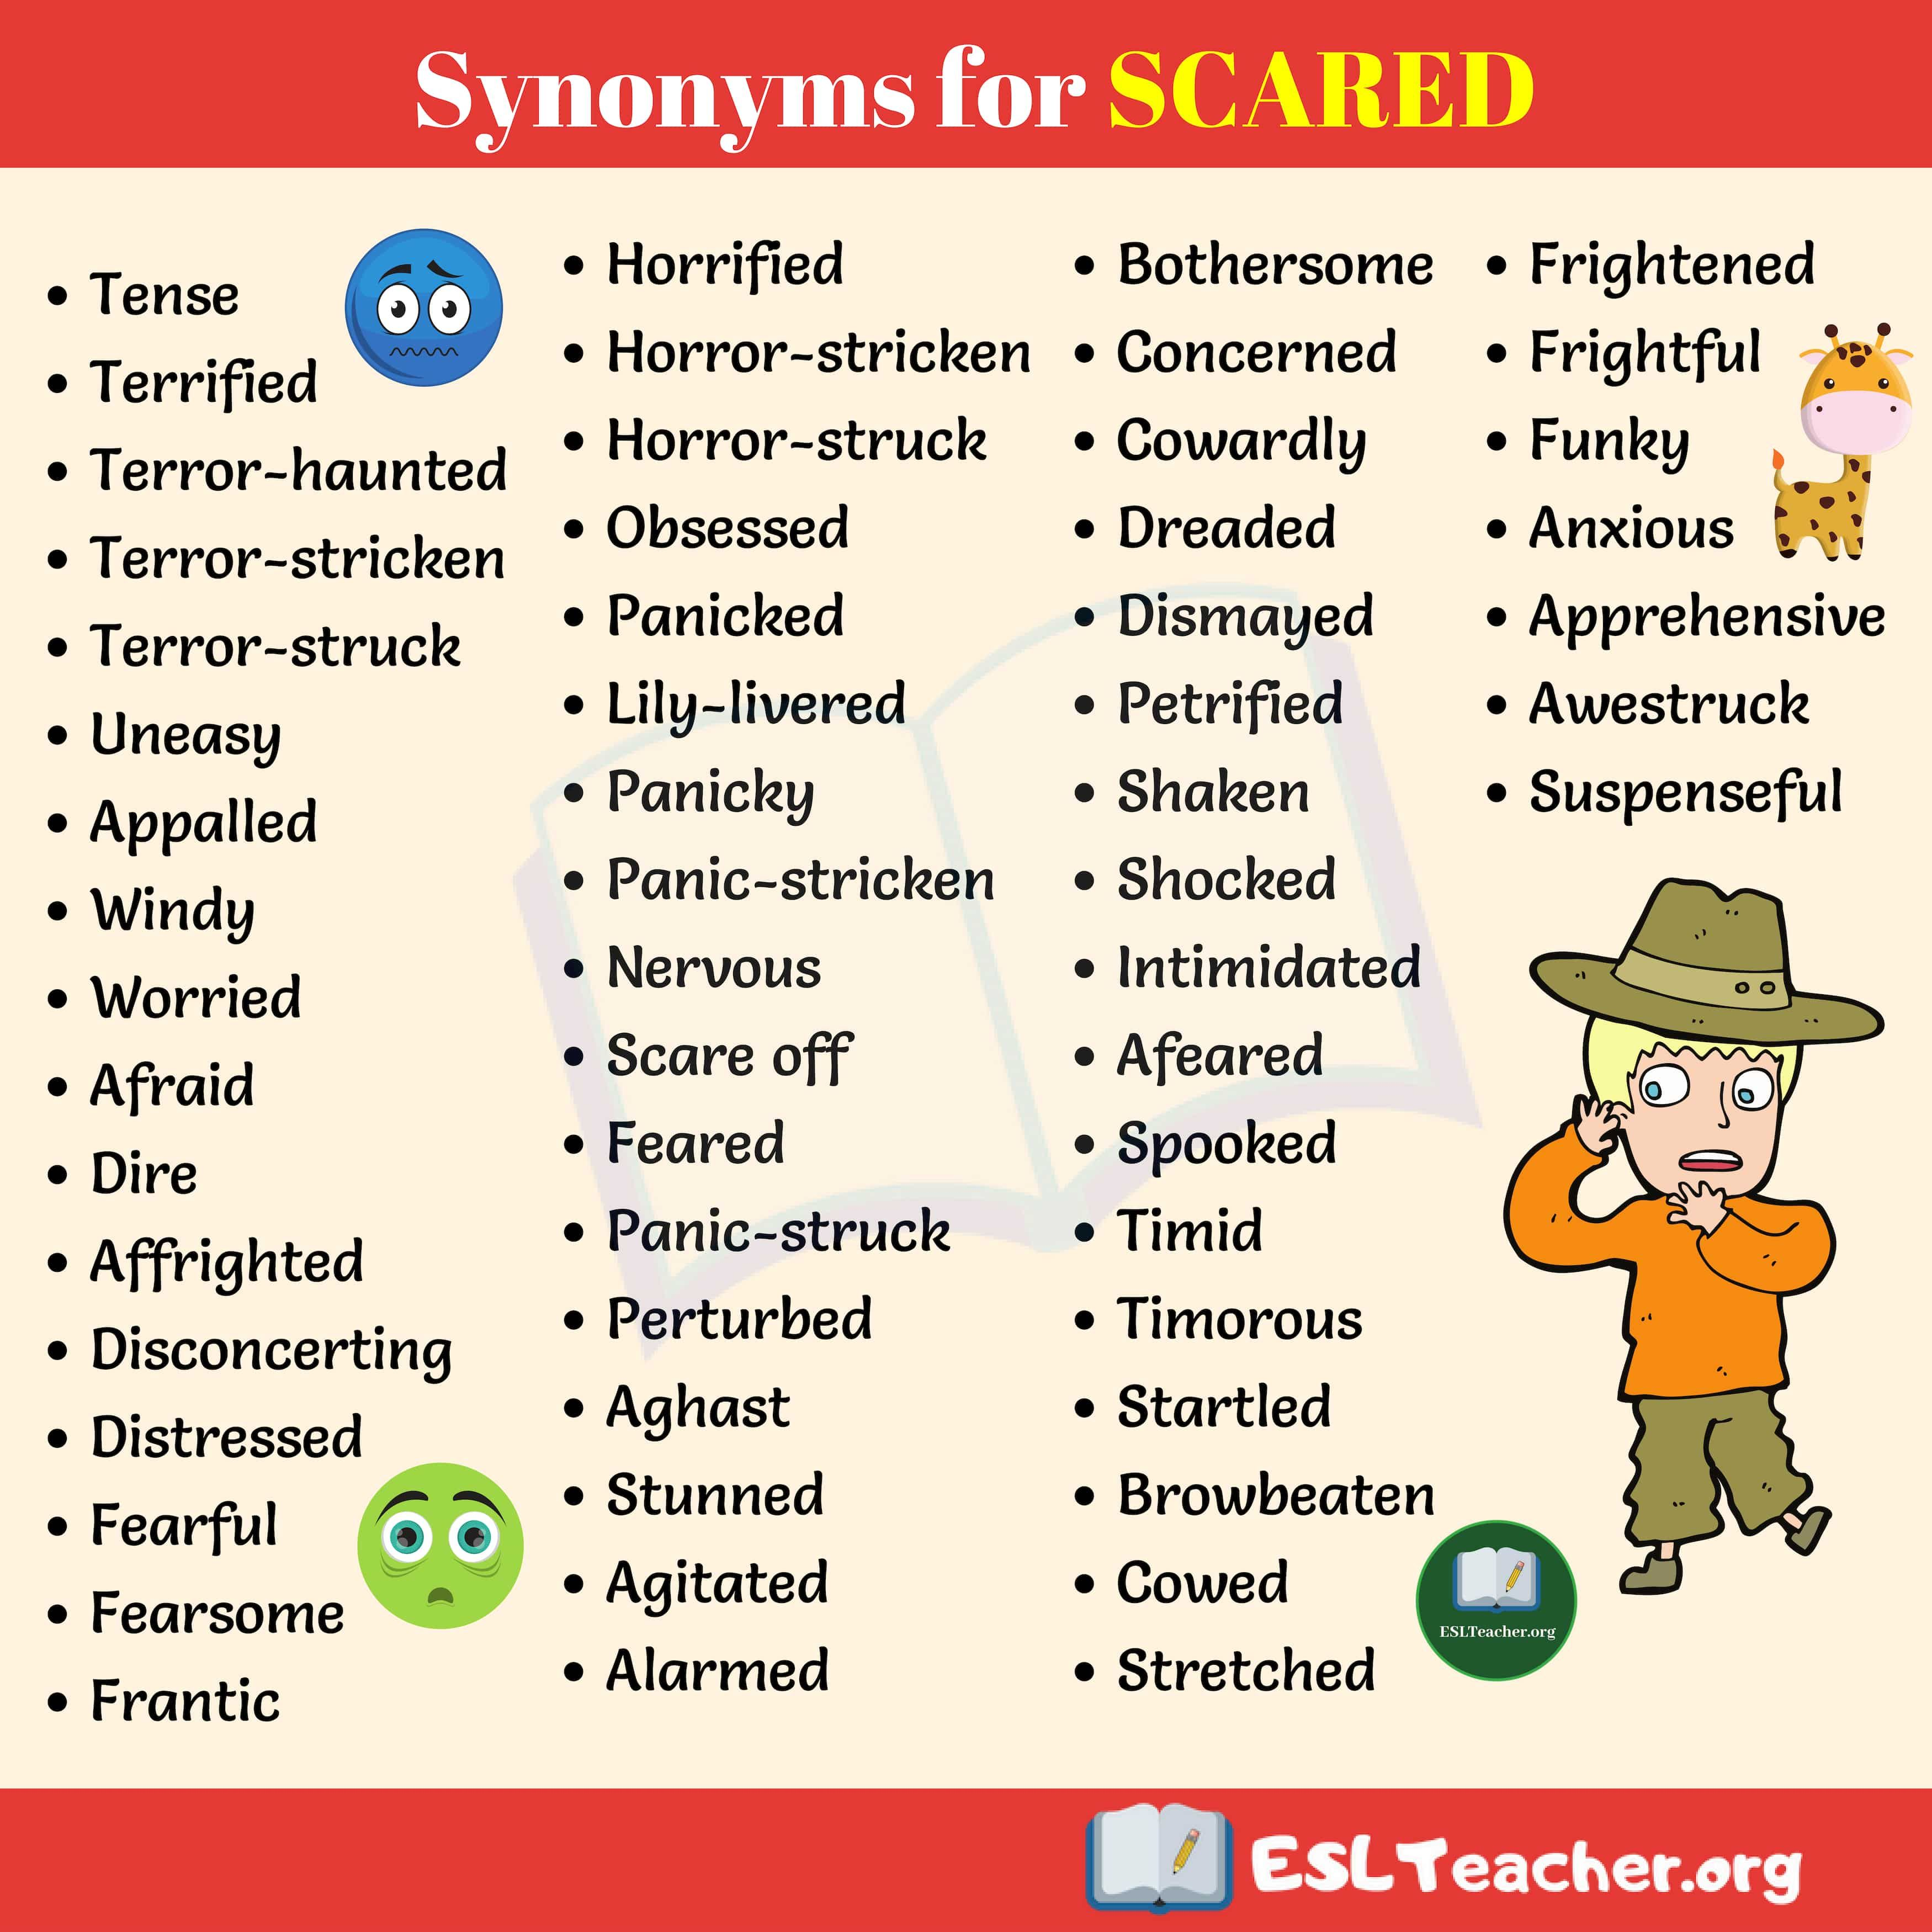 Synonyms For Scared Synonyms For Scared Words For Scared Learn English Vocabulary